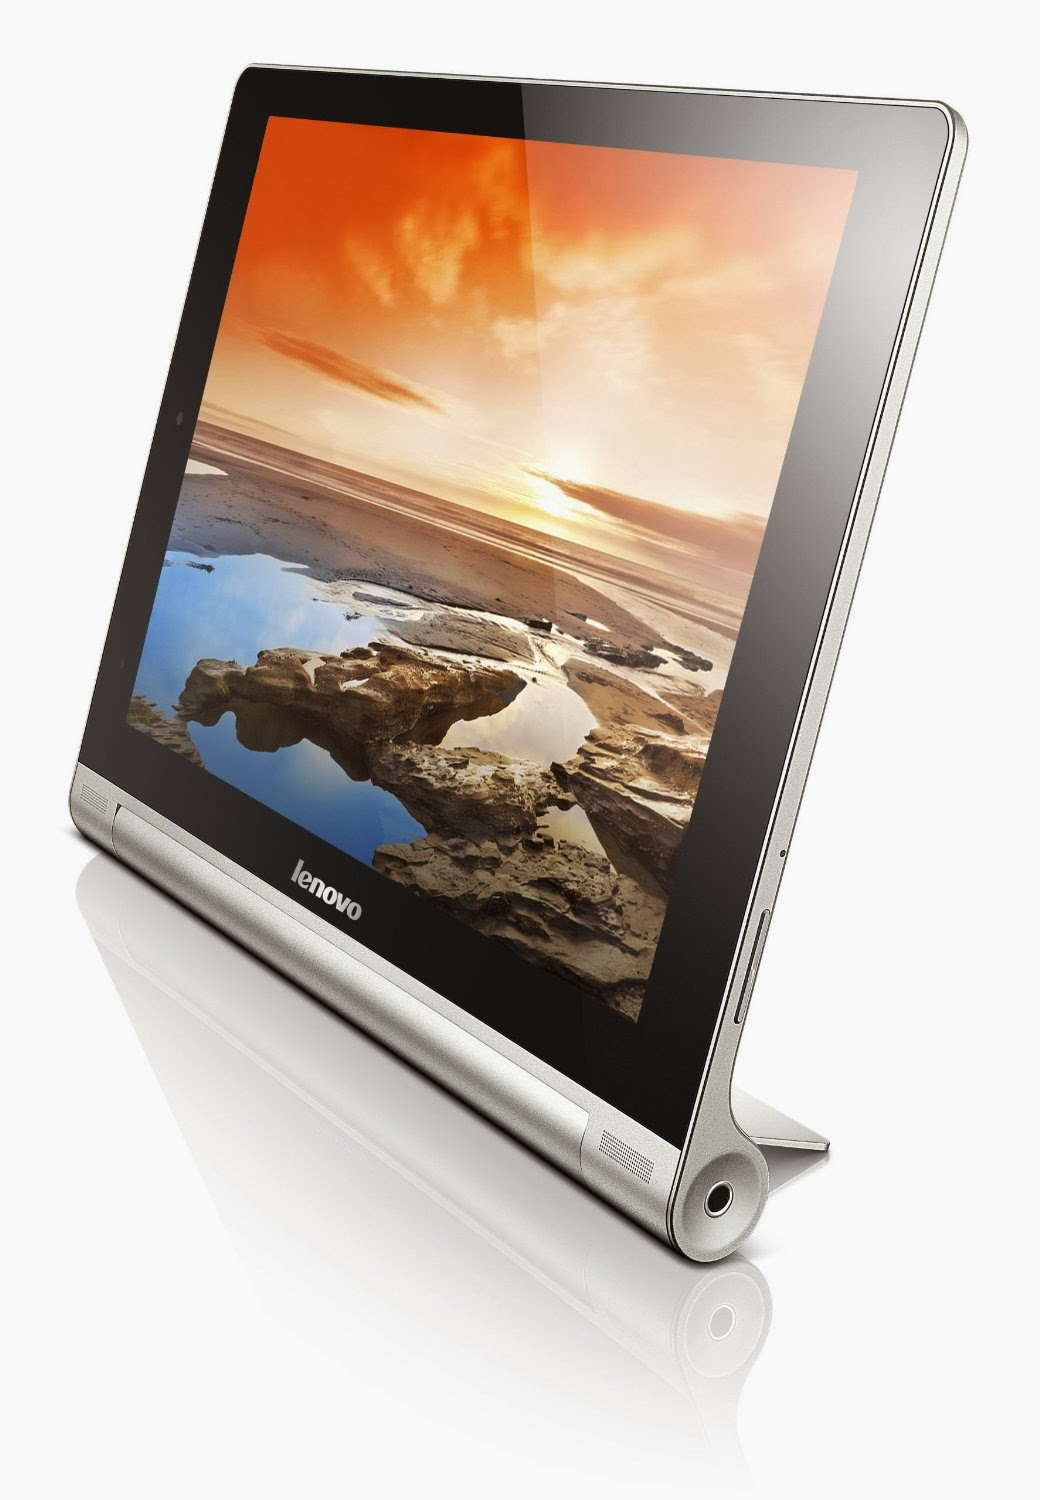 top lenovo yoga multimode 10 inch tablet review top 9 lenovo yoga. Black Bedroom Furniture Sets. Home Design Ideas